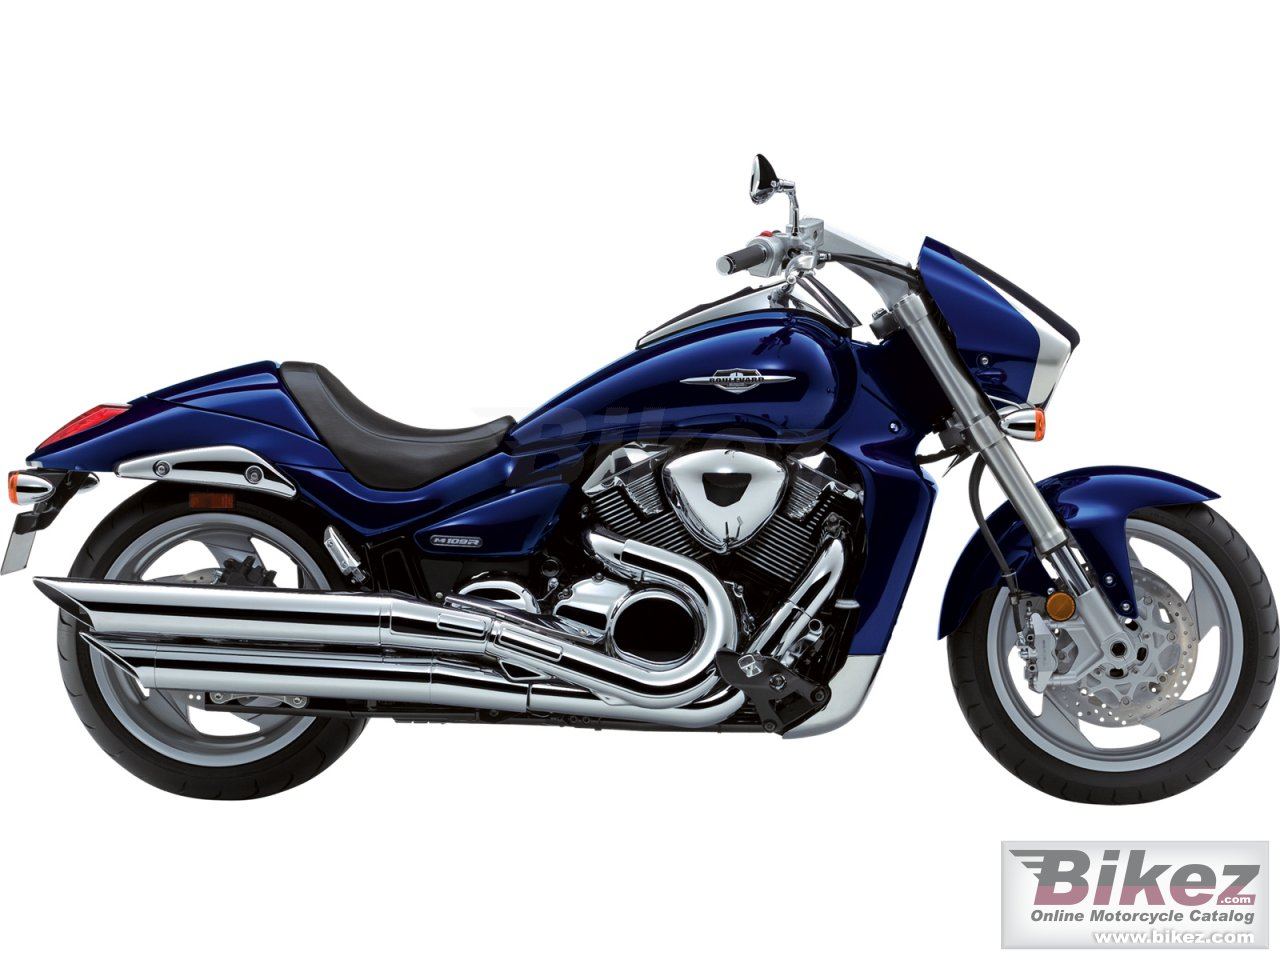 Big Suzuki boulevard m109r limited edition picture and wallpaper from Bikez.com